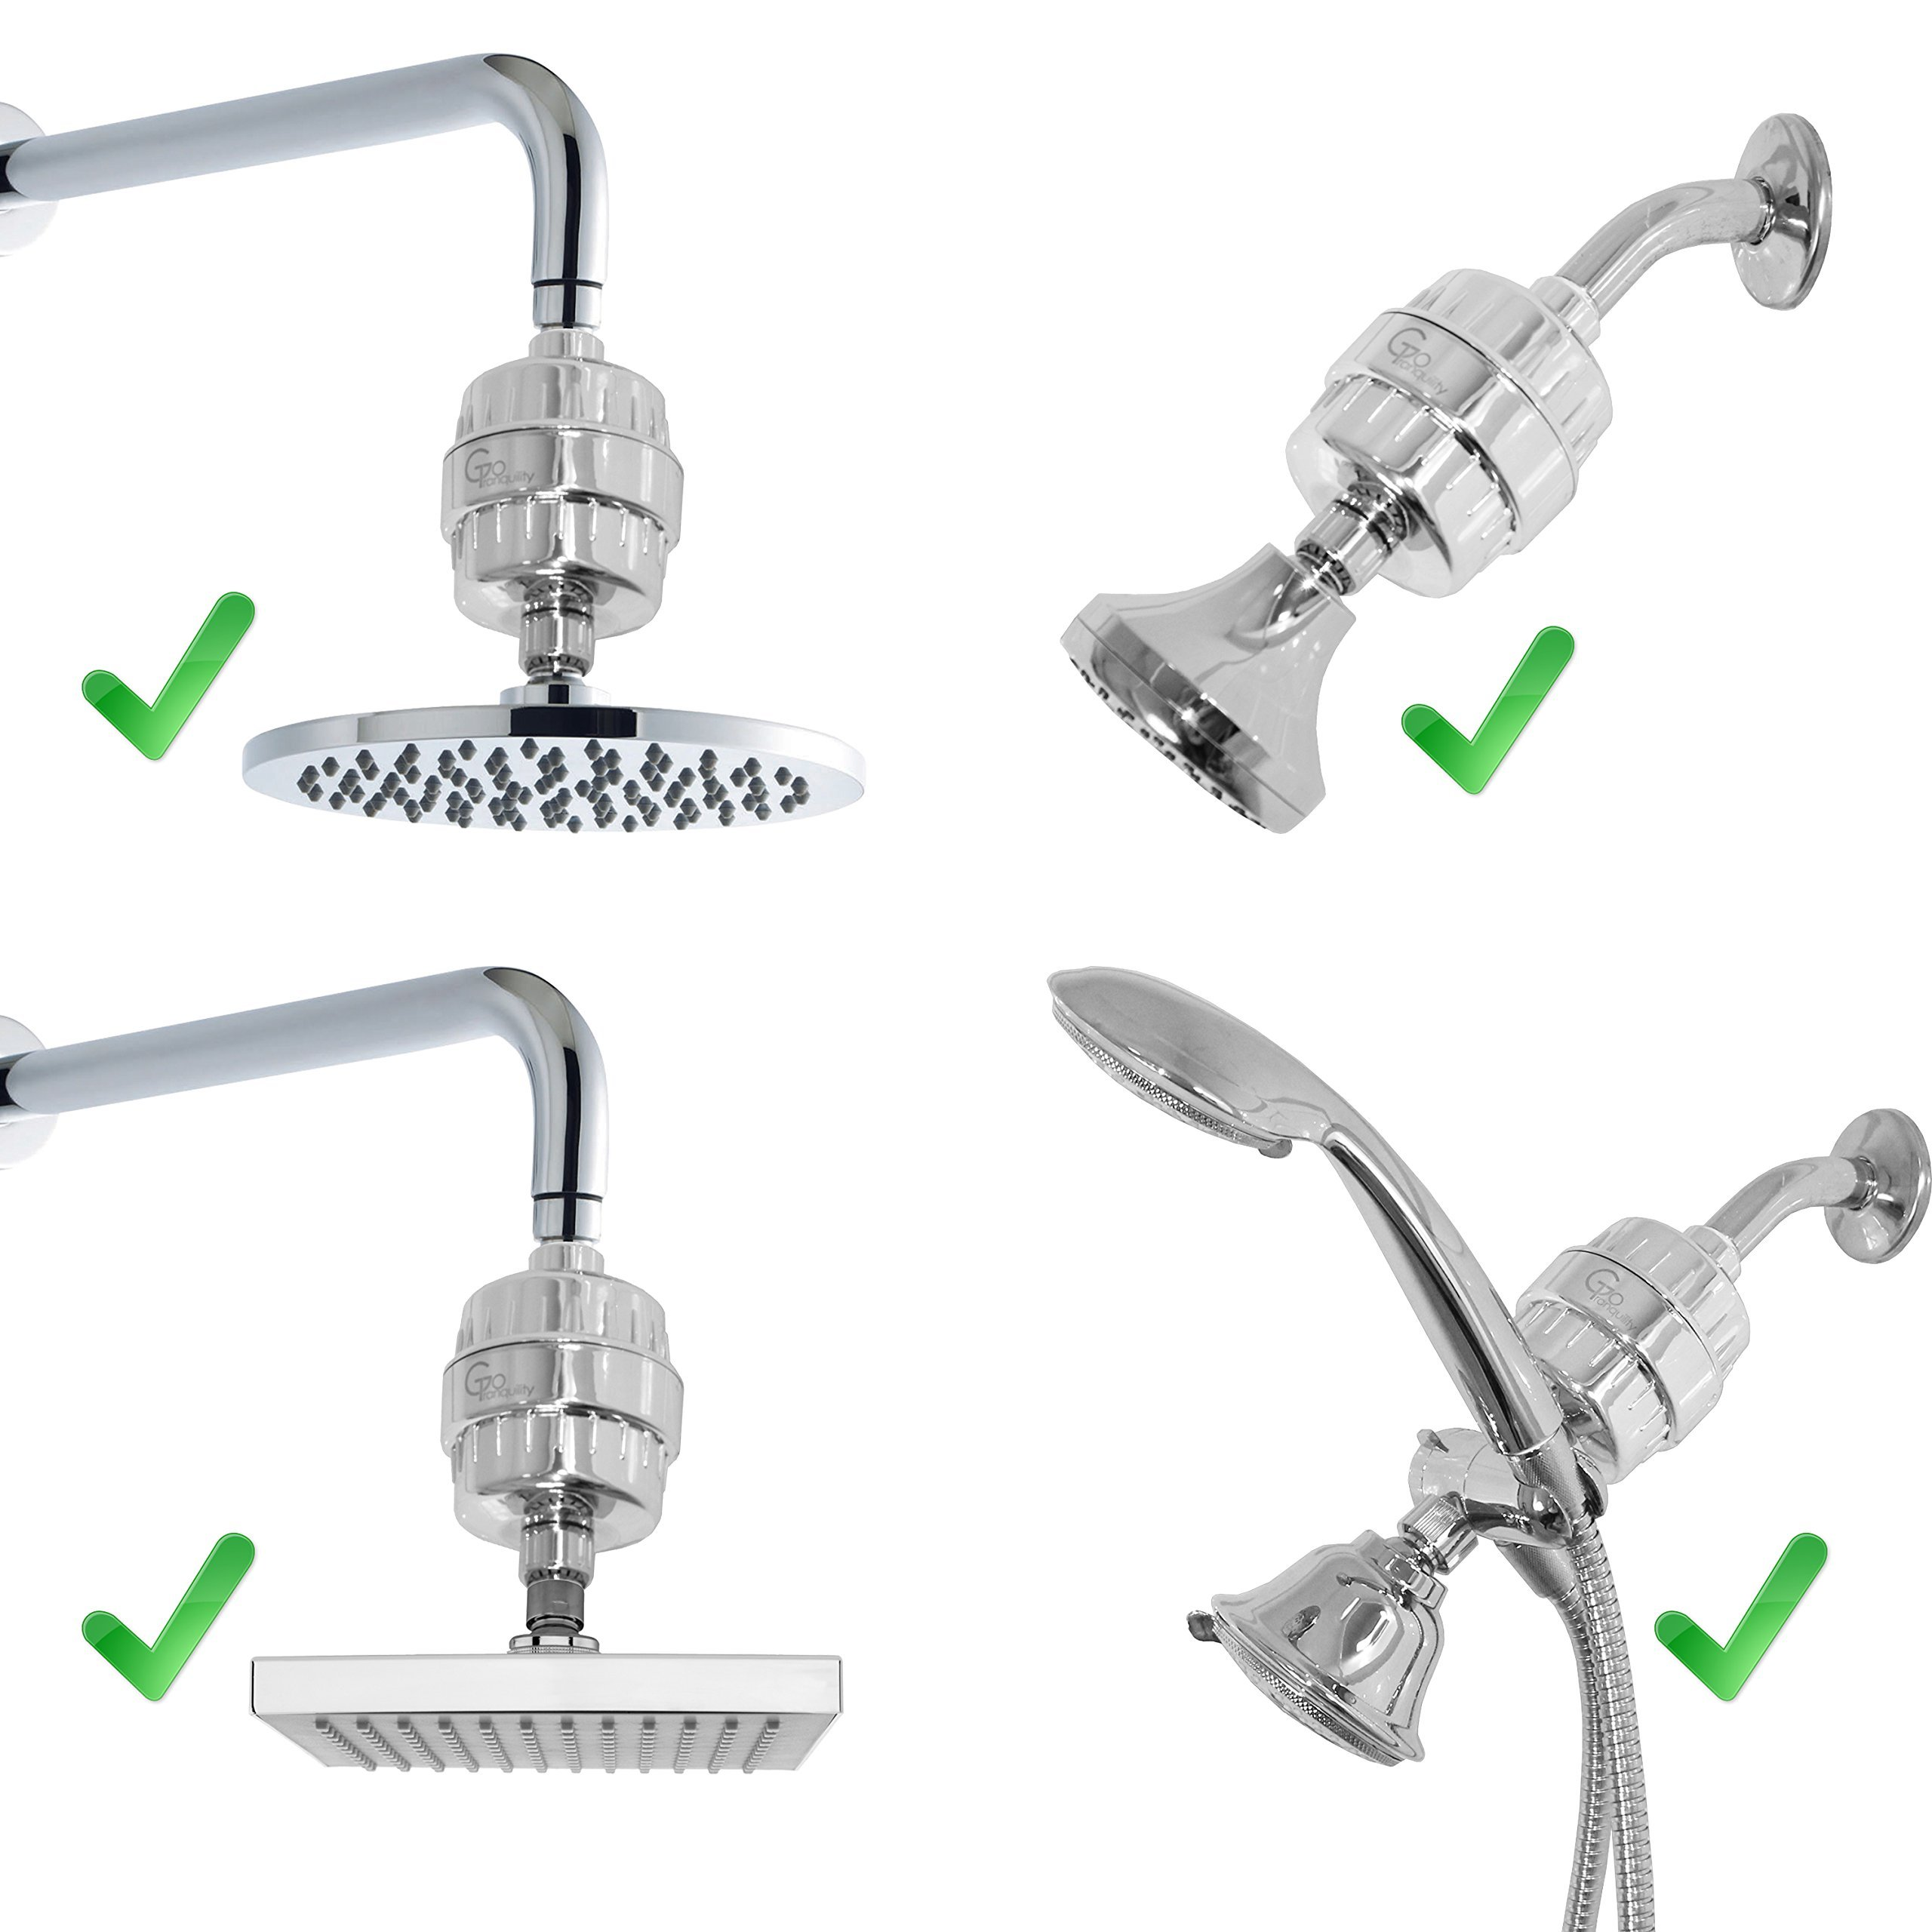 Shower Head Chlorine Filter & Hard Water Softener With Replacement Cartridge Prevents Hair & Skin Dryness Universal Showerhead System by GoTranquility (Image #5)